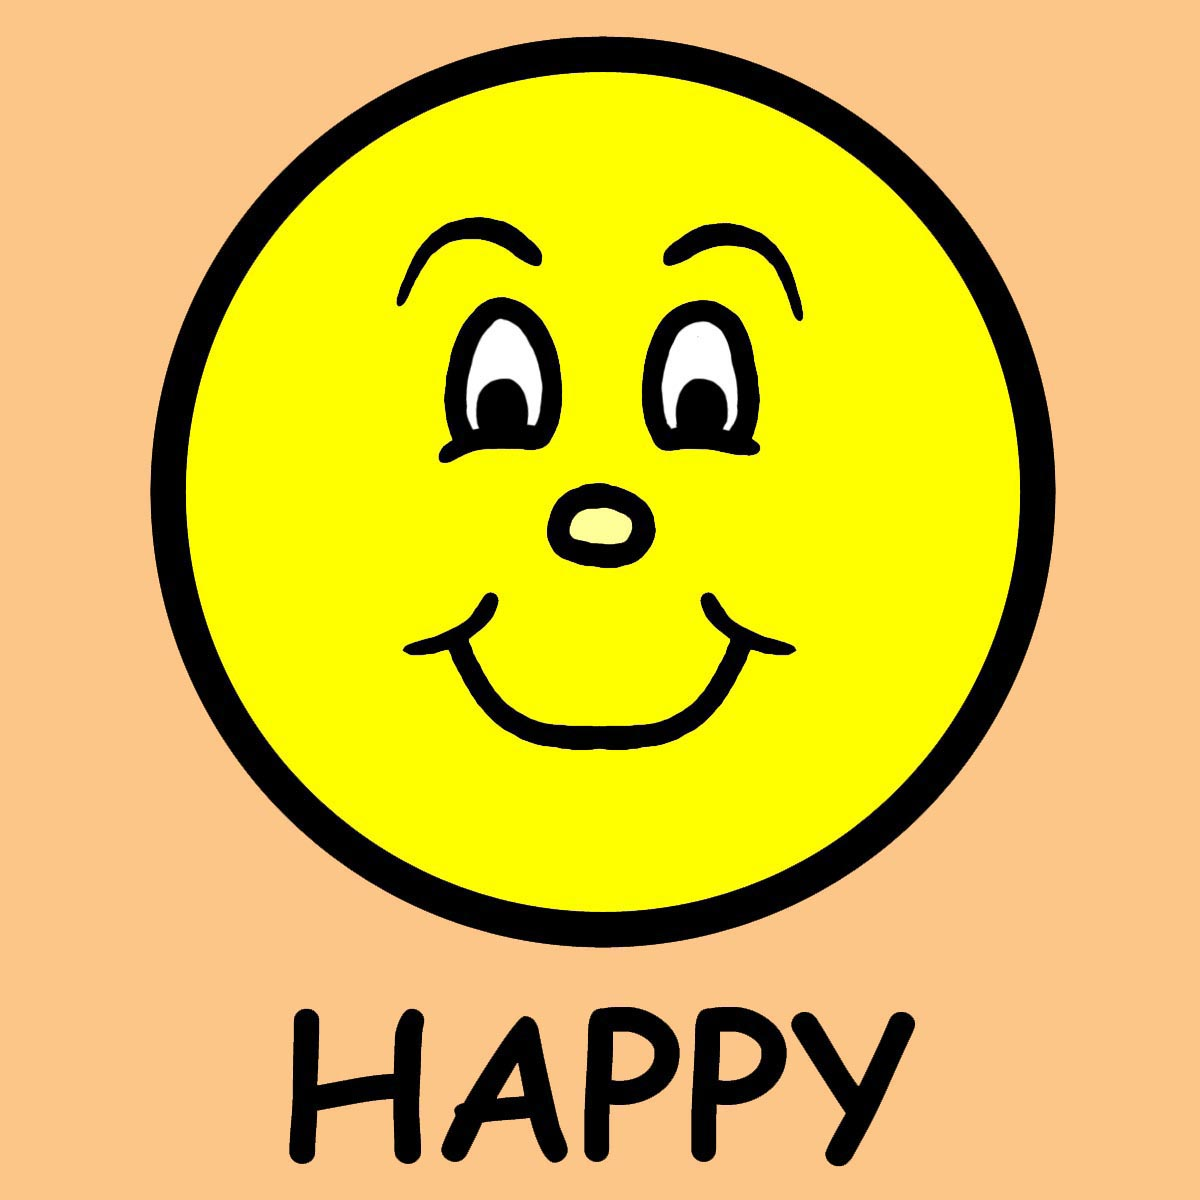 And Happy Faces Clip Art - ClipArt Best